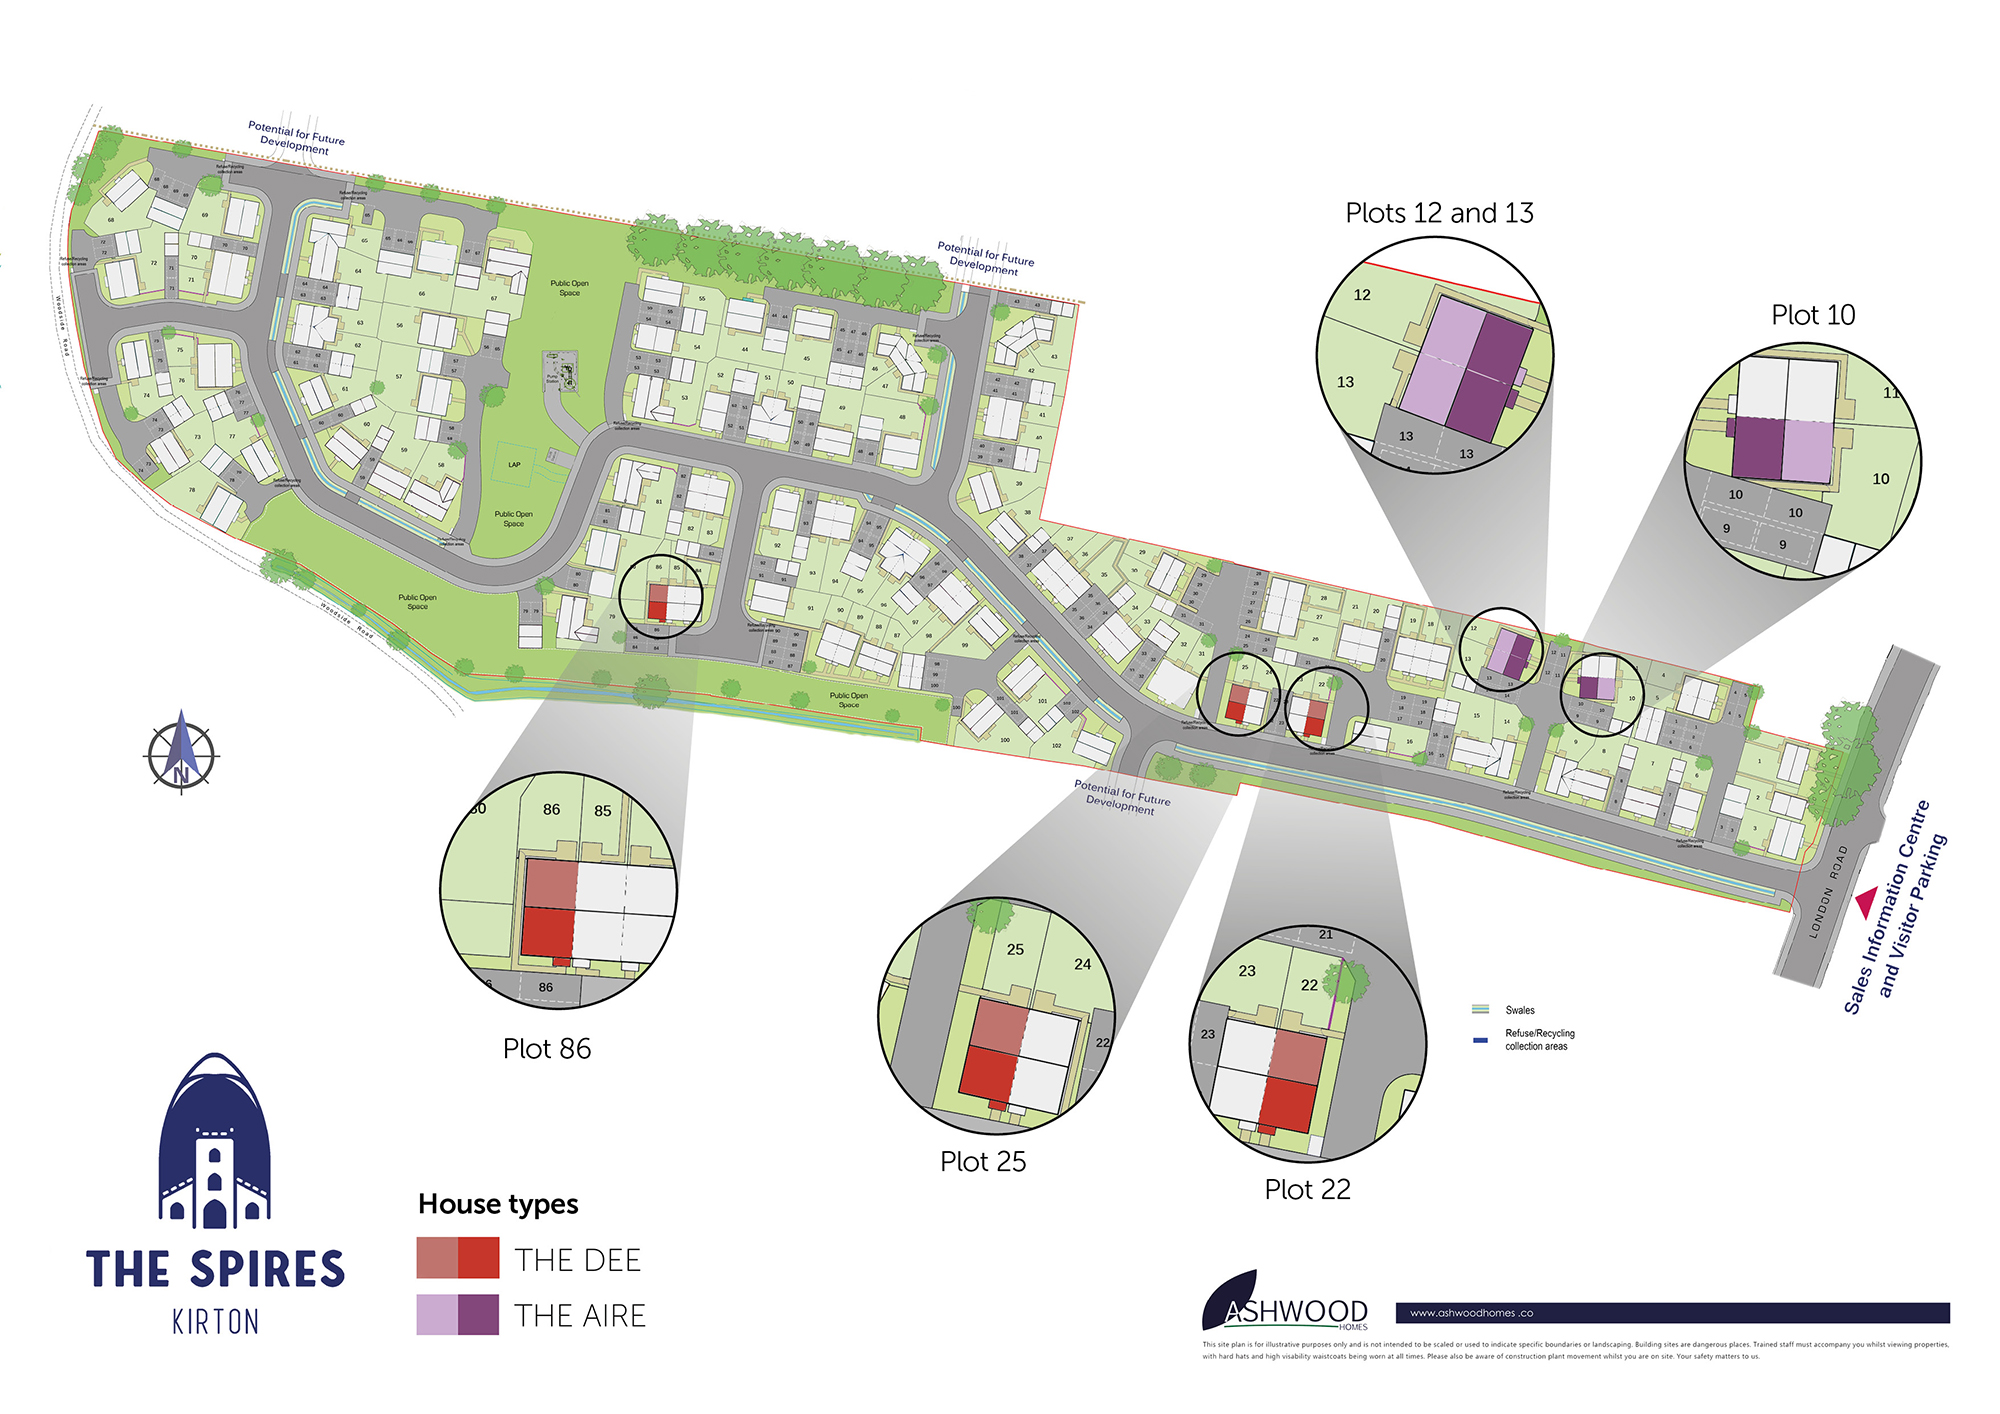 The Spires Site Plan